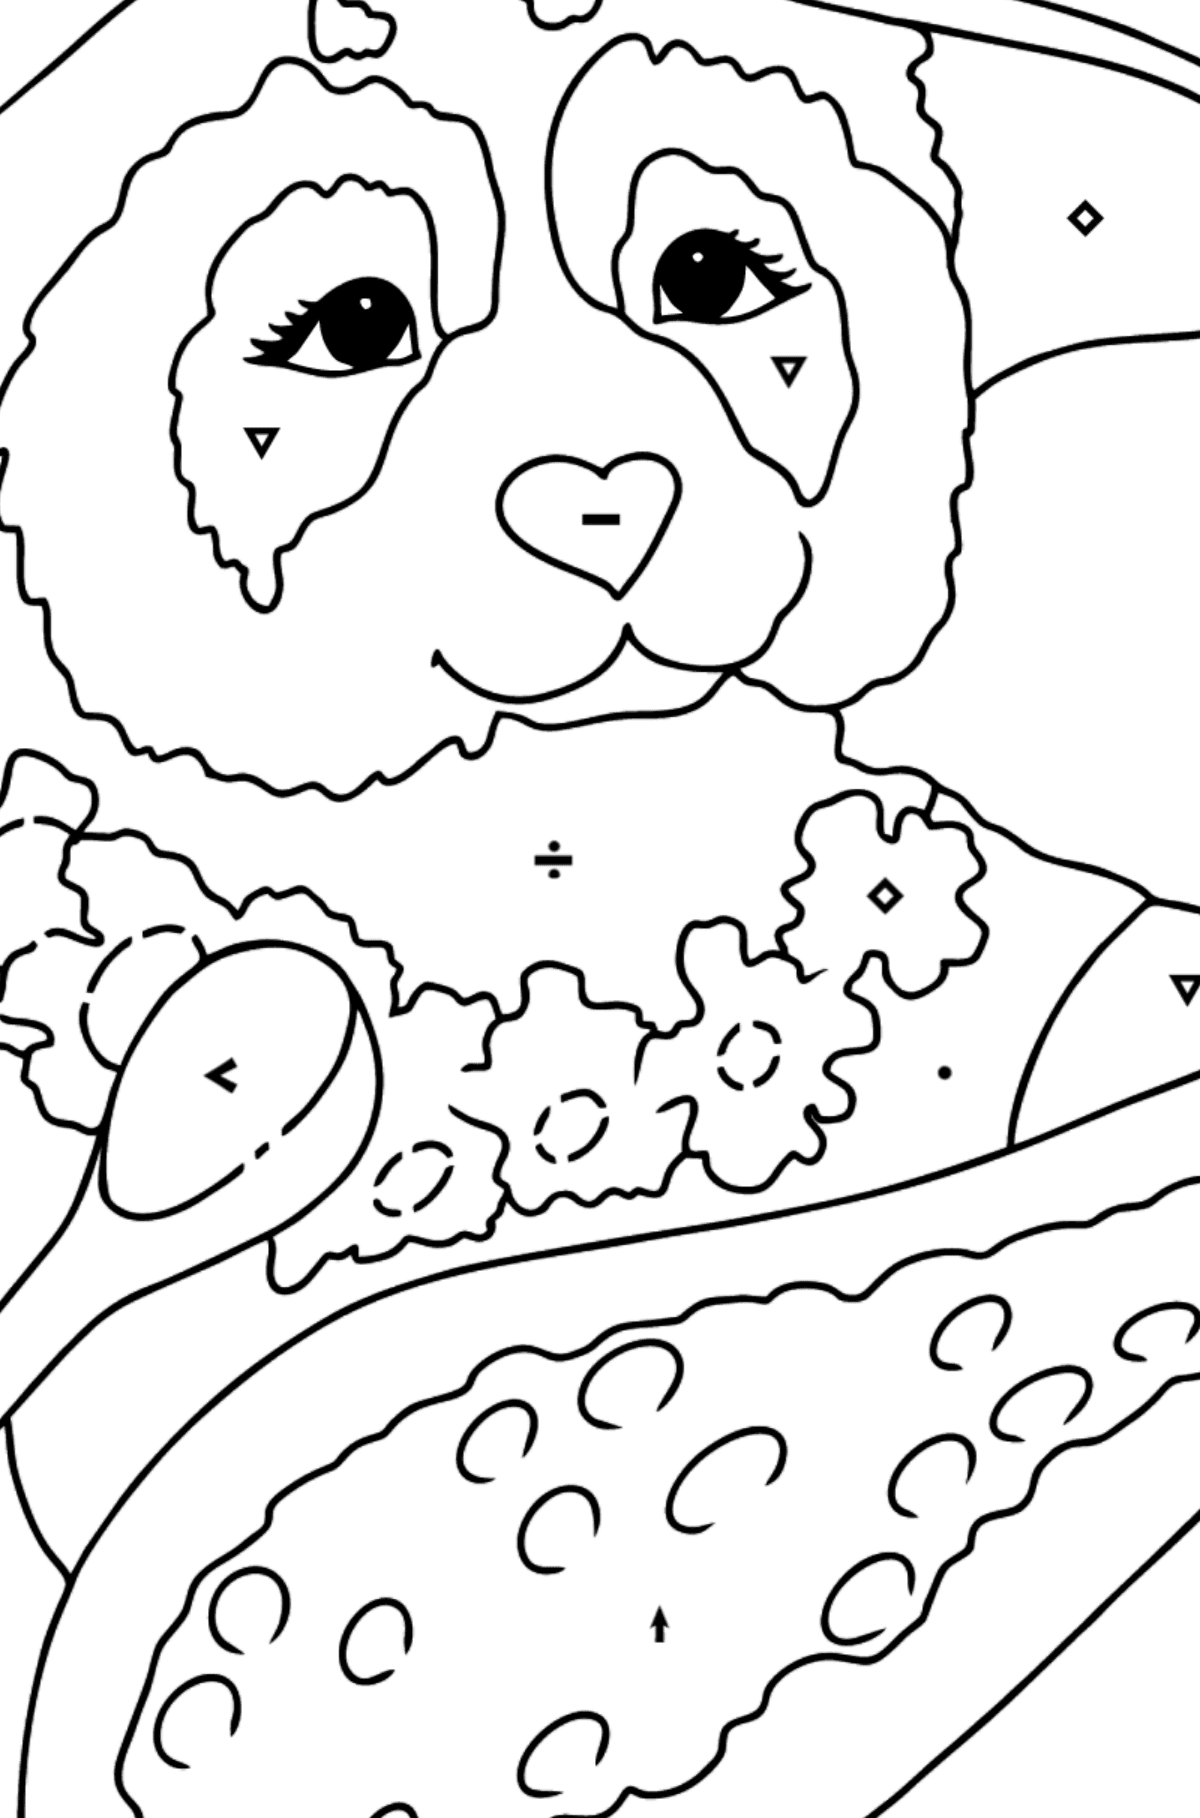 Coloring Page - A Panda is Having Lunch - Coloring by Symbols for Kids